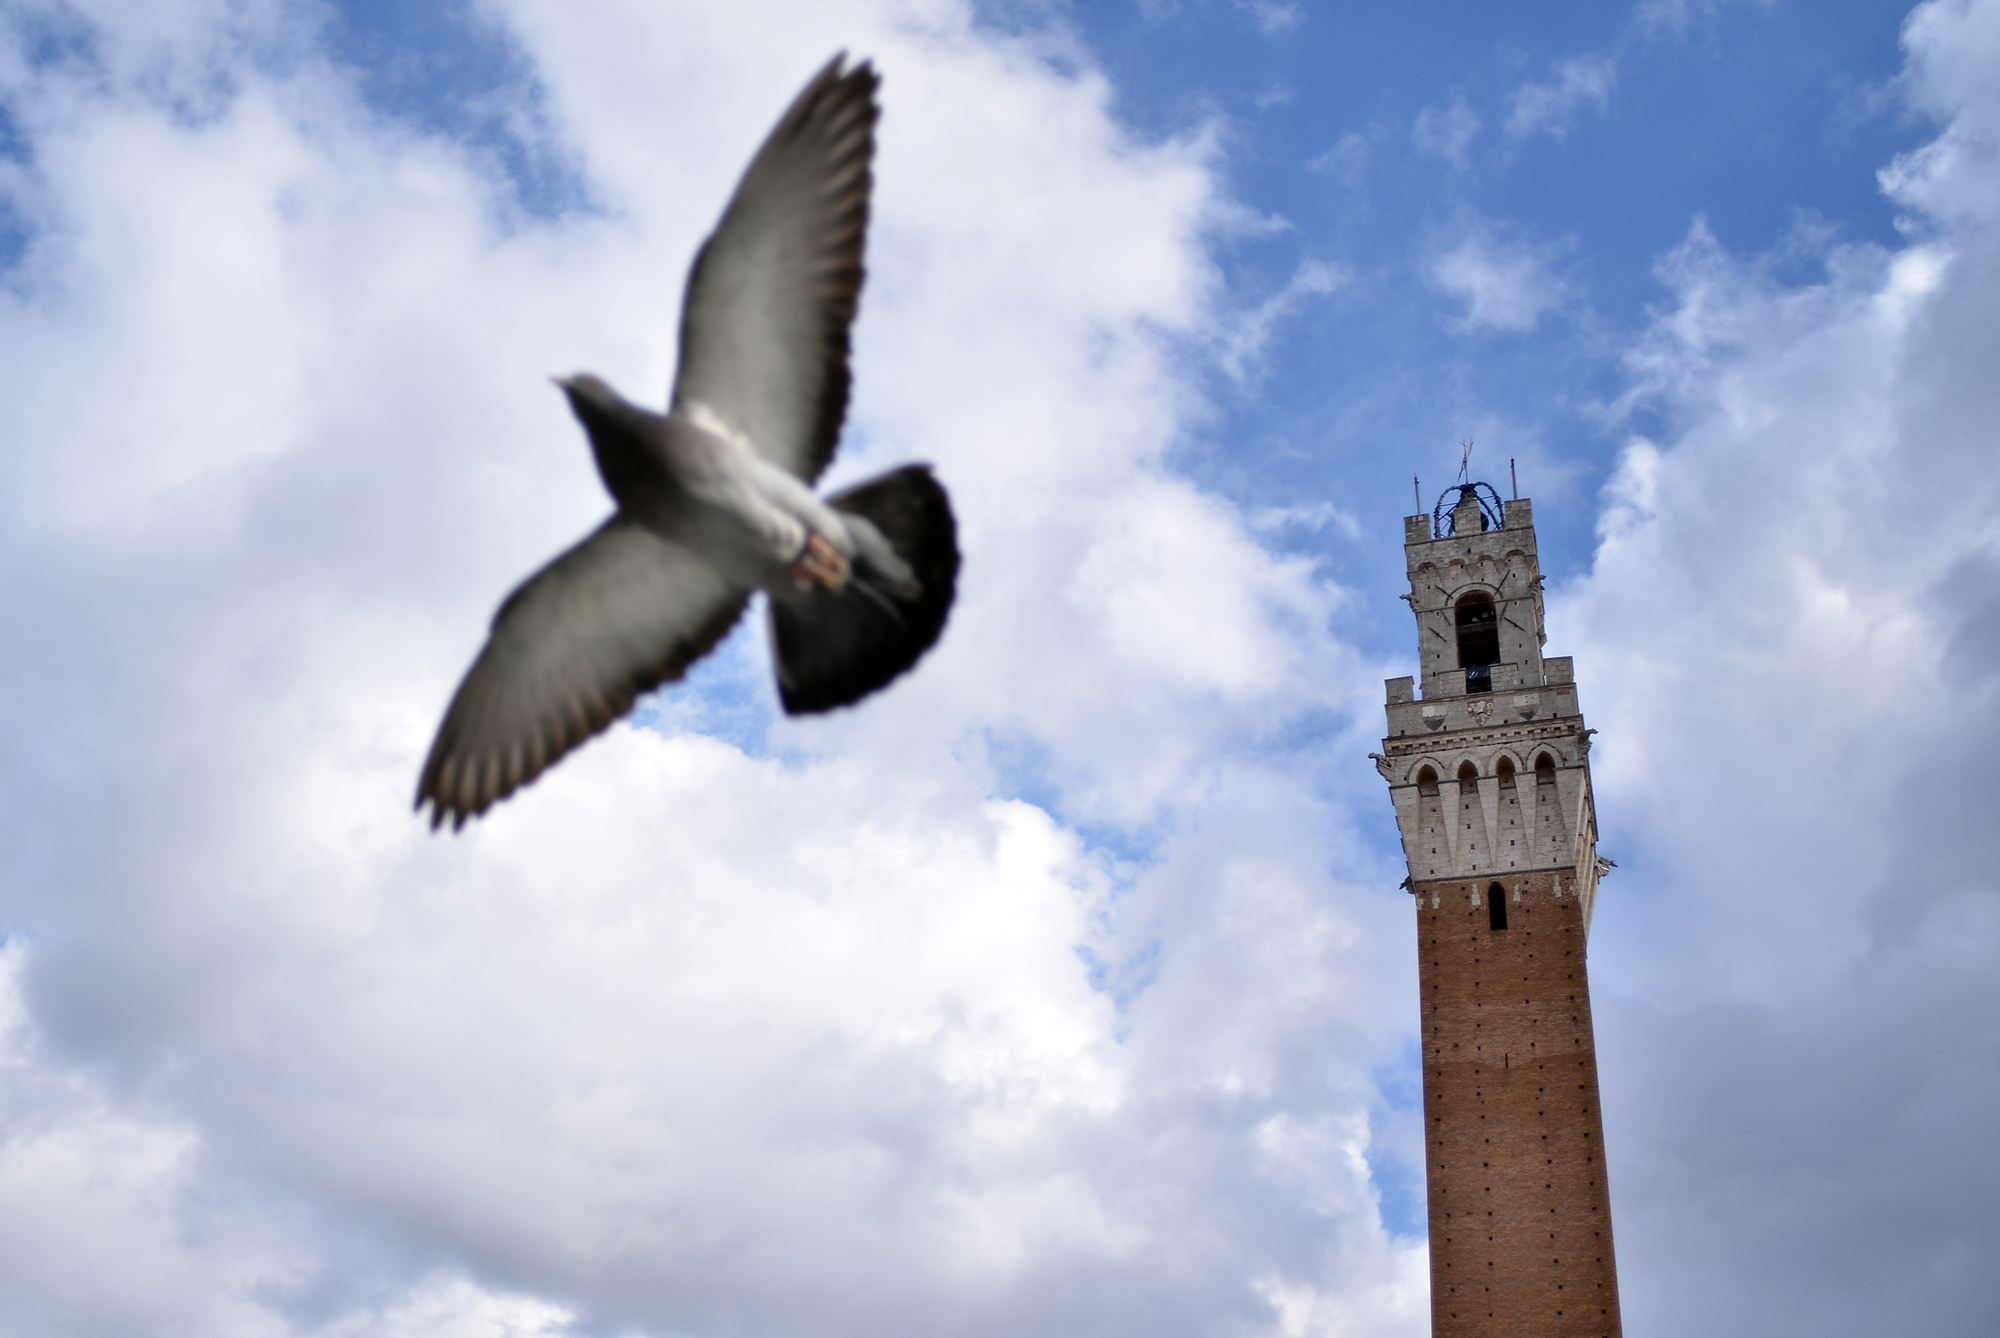 Michael McCollum3/15/13Pigeon and tower in Sienna Italy